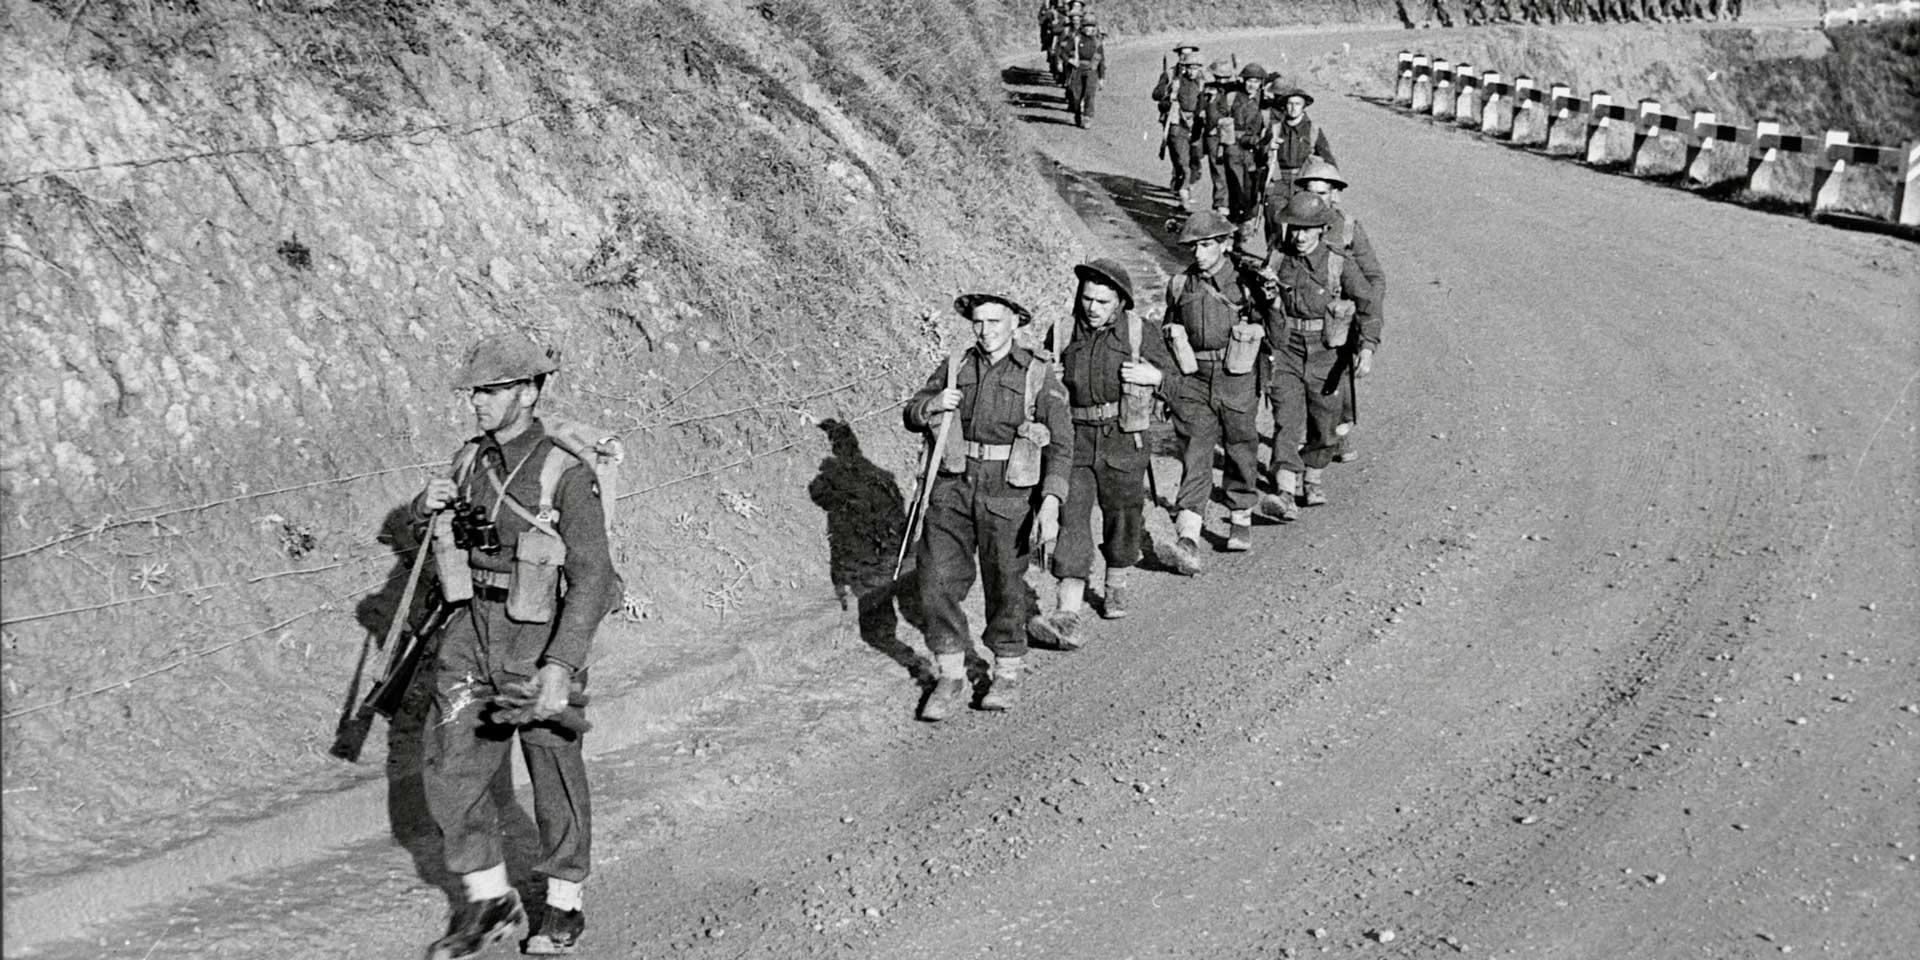 1st Battalion, The East Surrey Regiment advancing on the Sangro front, Italy, 1943